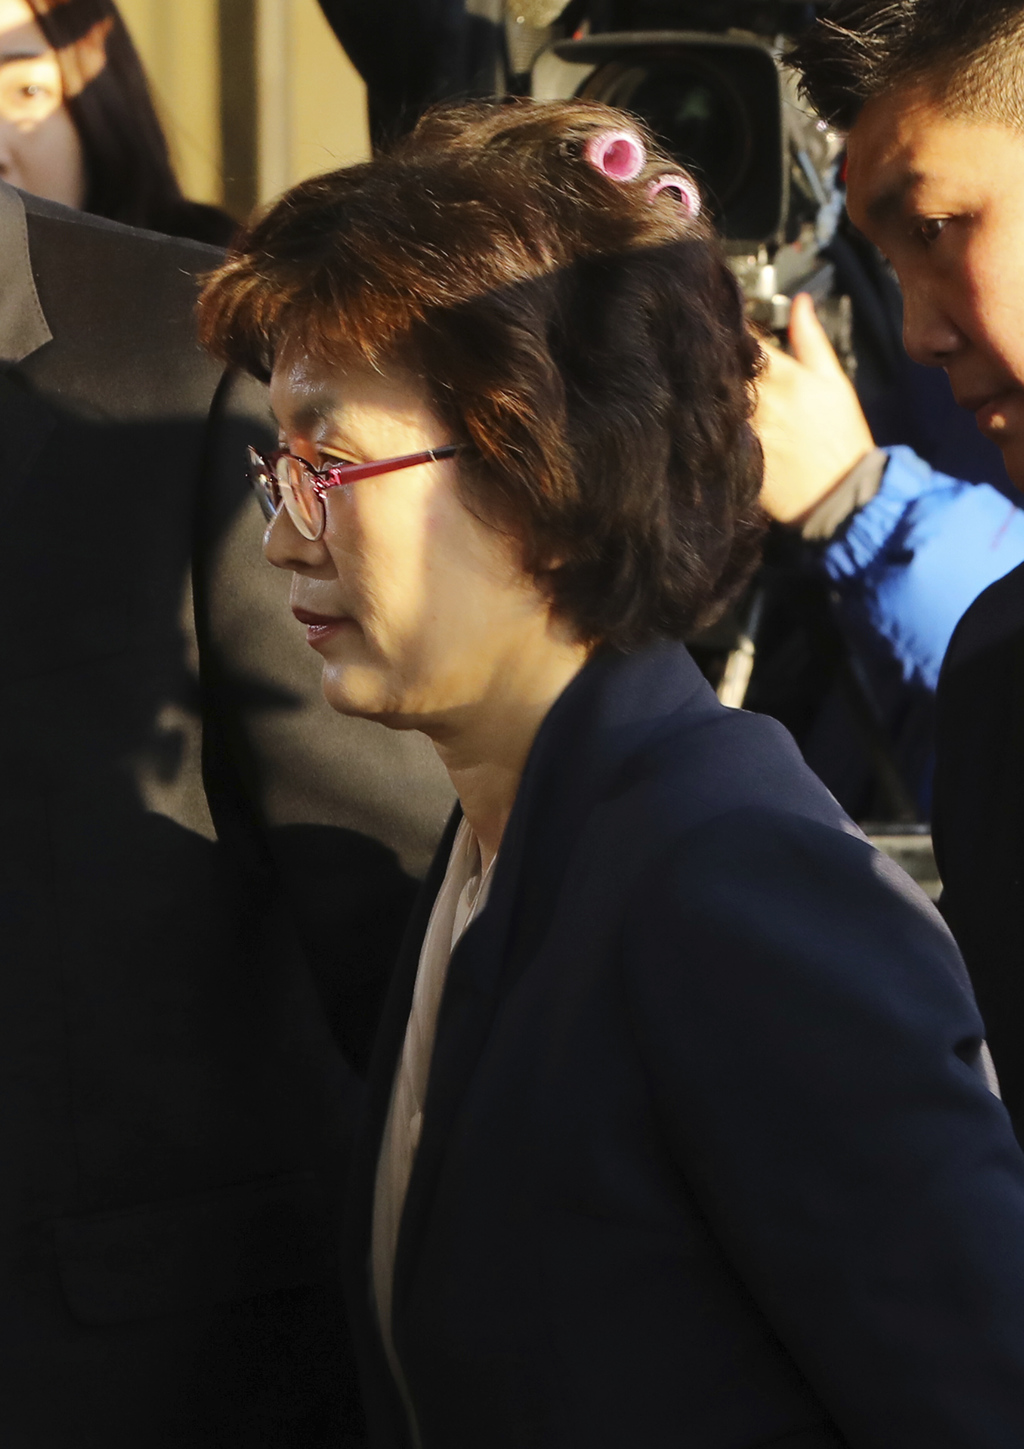 Acting Chief Justice Lee Jung-mi arrives with curlers in her hair at the Constitutional Court in Seoul, South Korea, Friday, March 10, ...